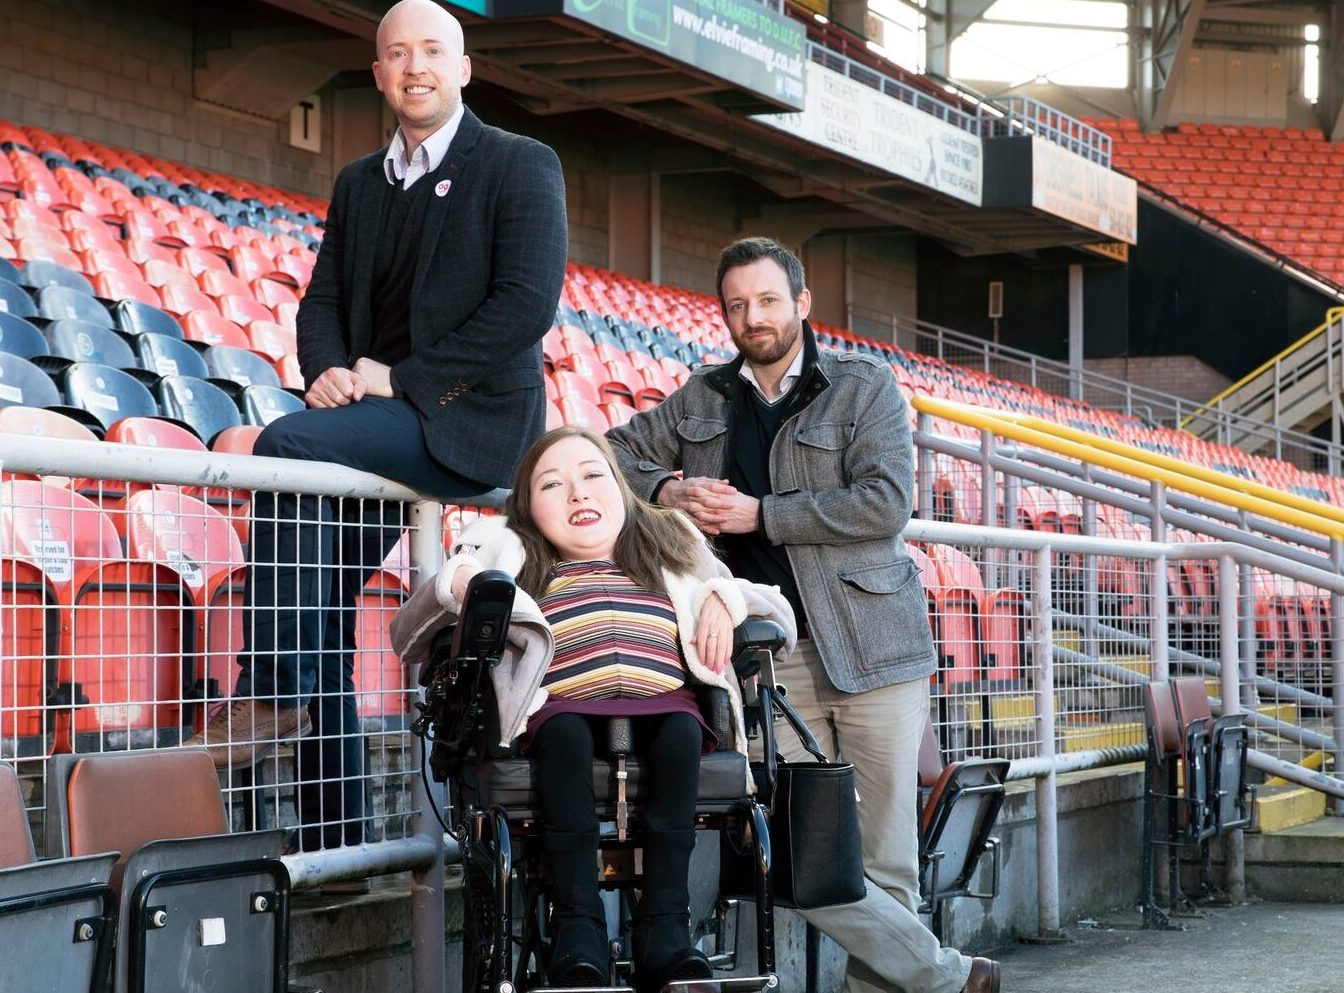 Richard Meiklejohn and Michael Leeland, of OOVIRT and wheelchair user Clair D'All at Tannadice park.